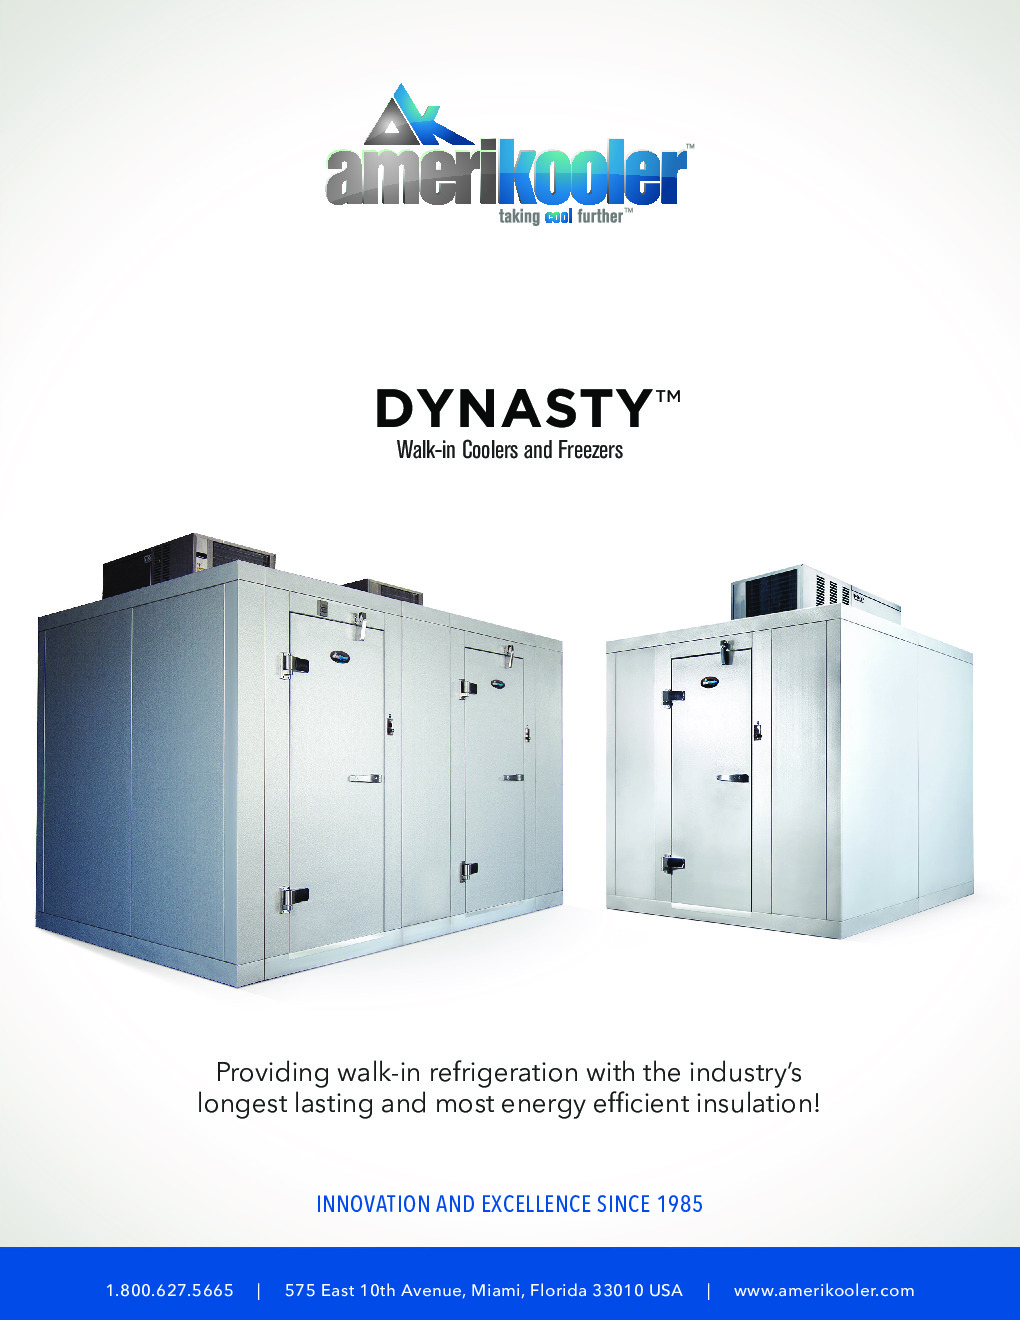 AmeriKooler DW091677N-7/9-SC 9' X 16' Walk-In Cooler, 9' L Cooler without Floor and 7' L Freezer, Self Contained